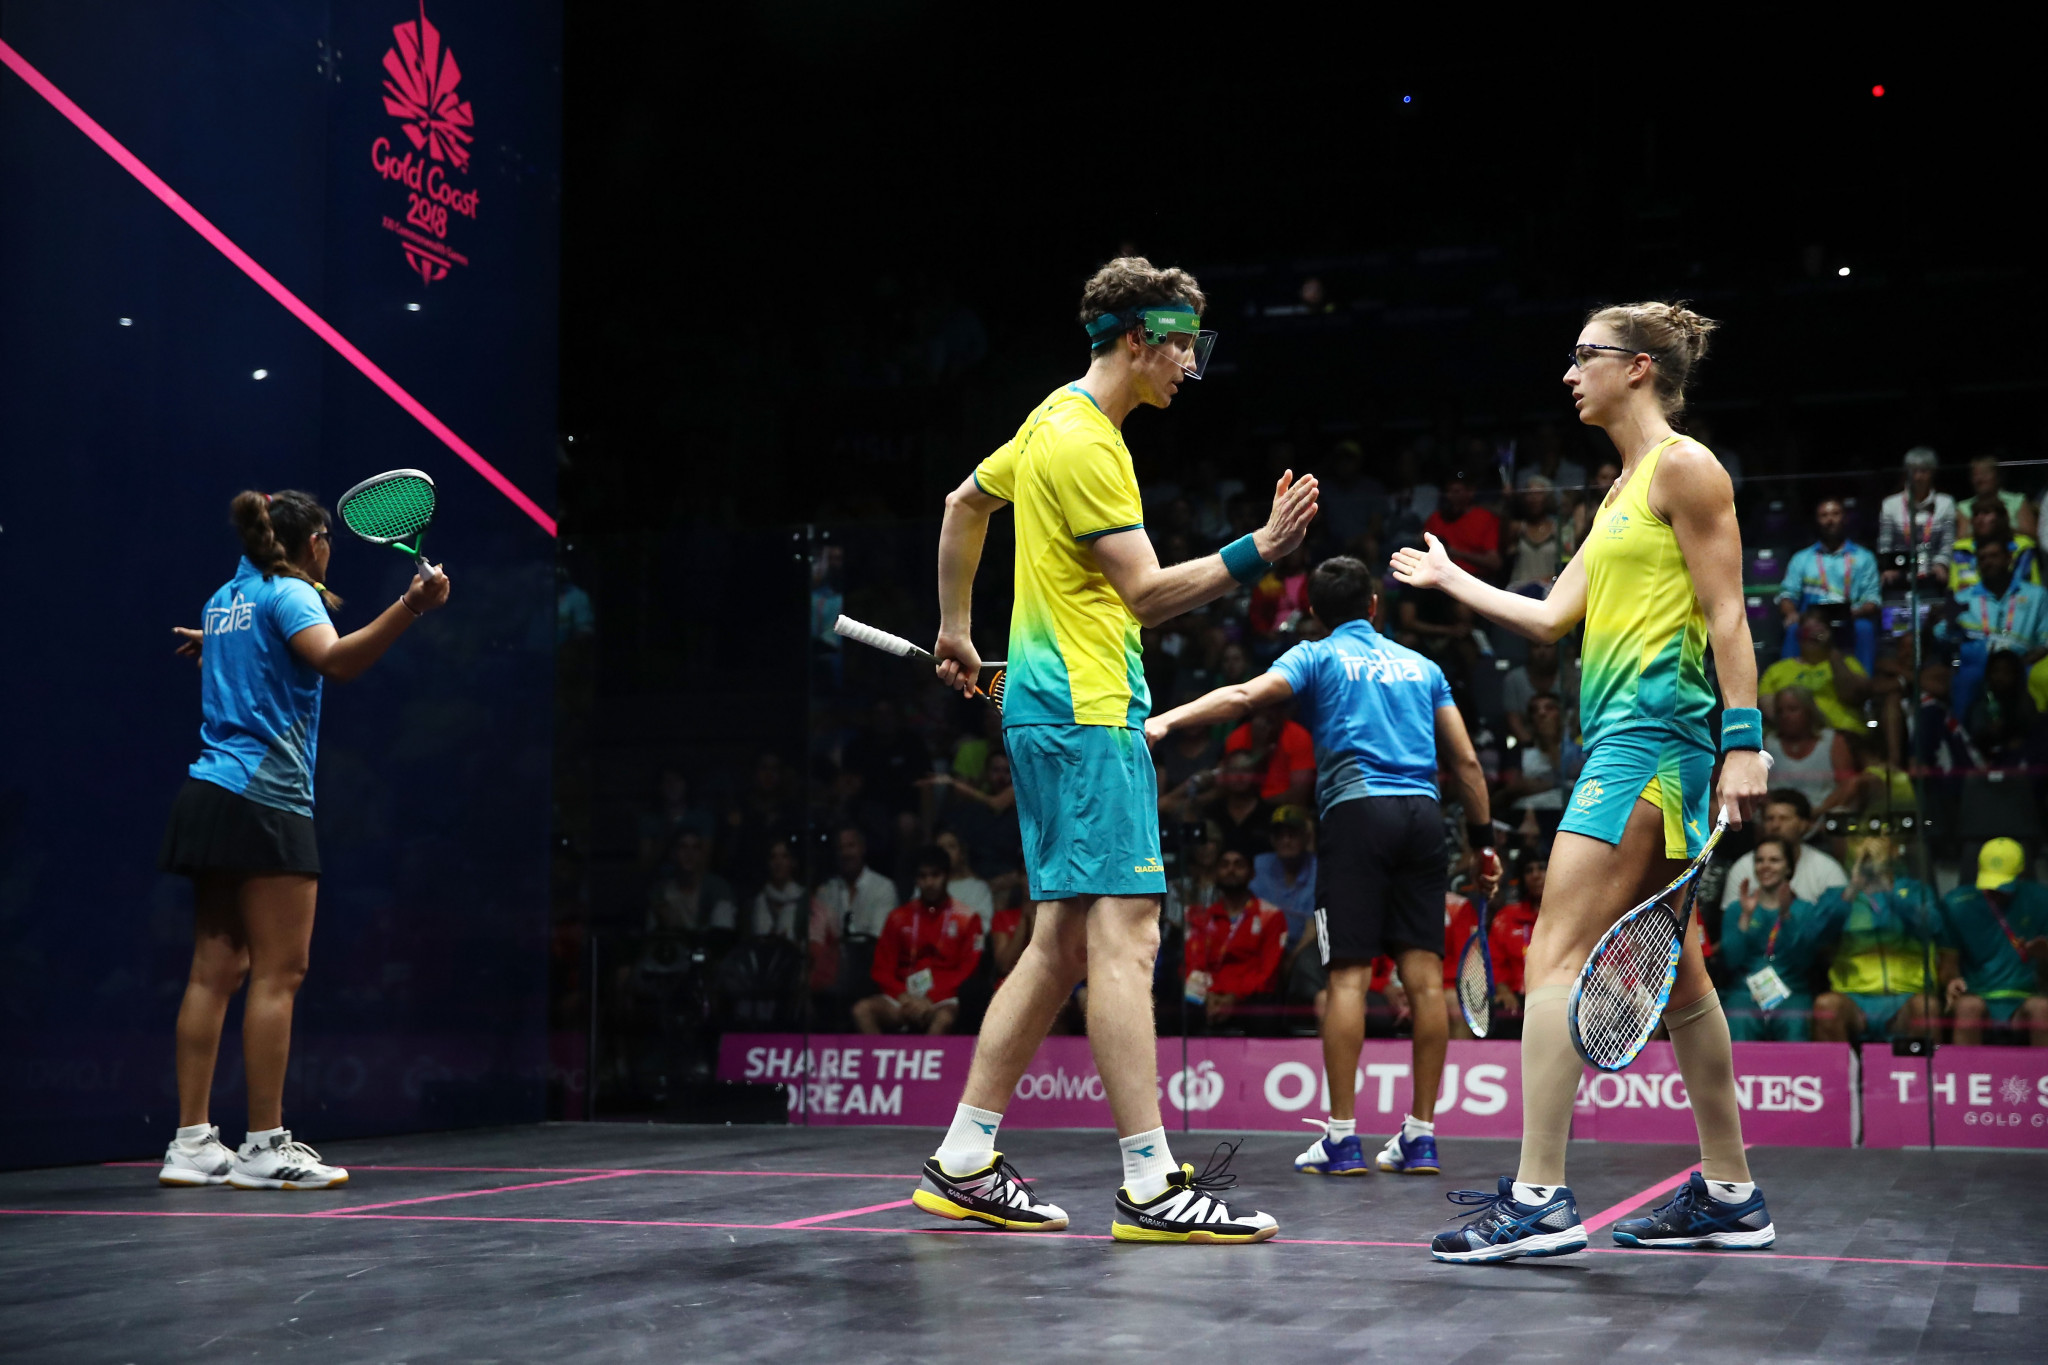 Mixed doubles squash is a part of the Commonwealth Games programme ©Getty Images